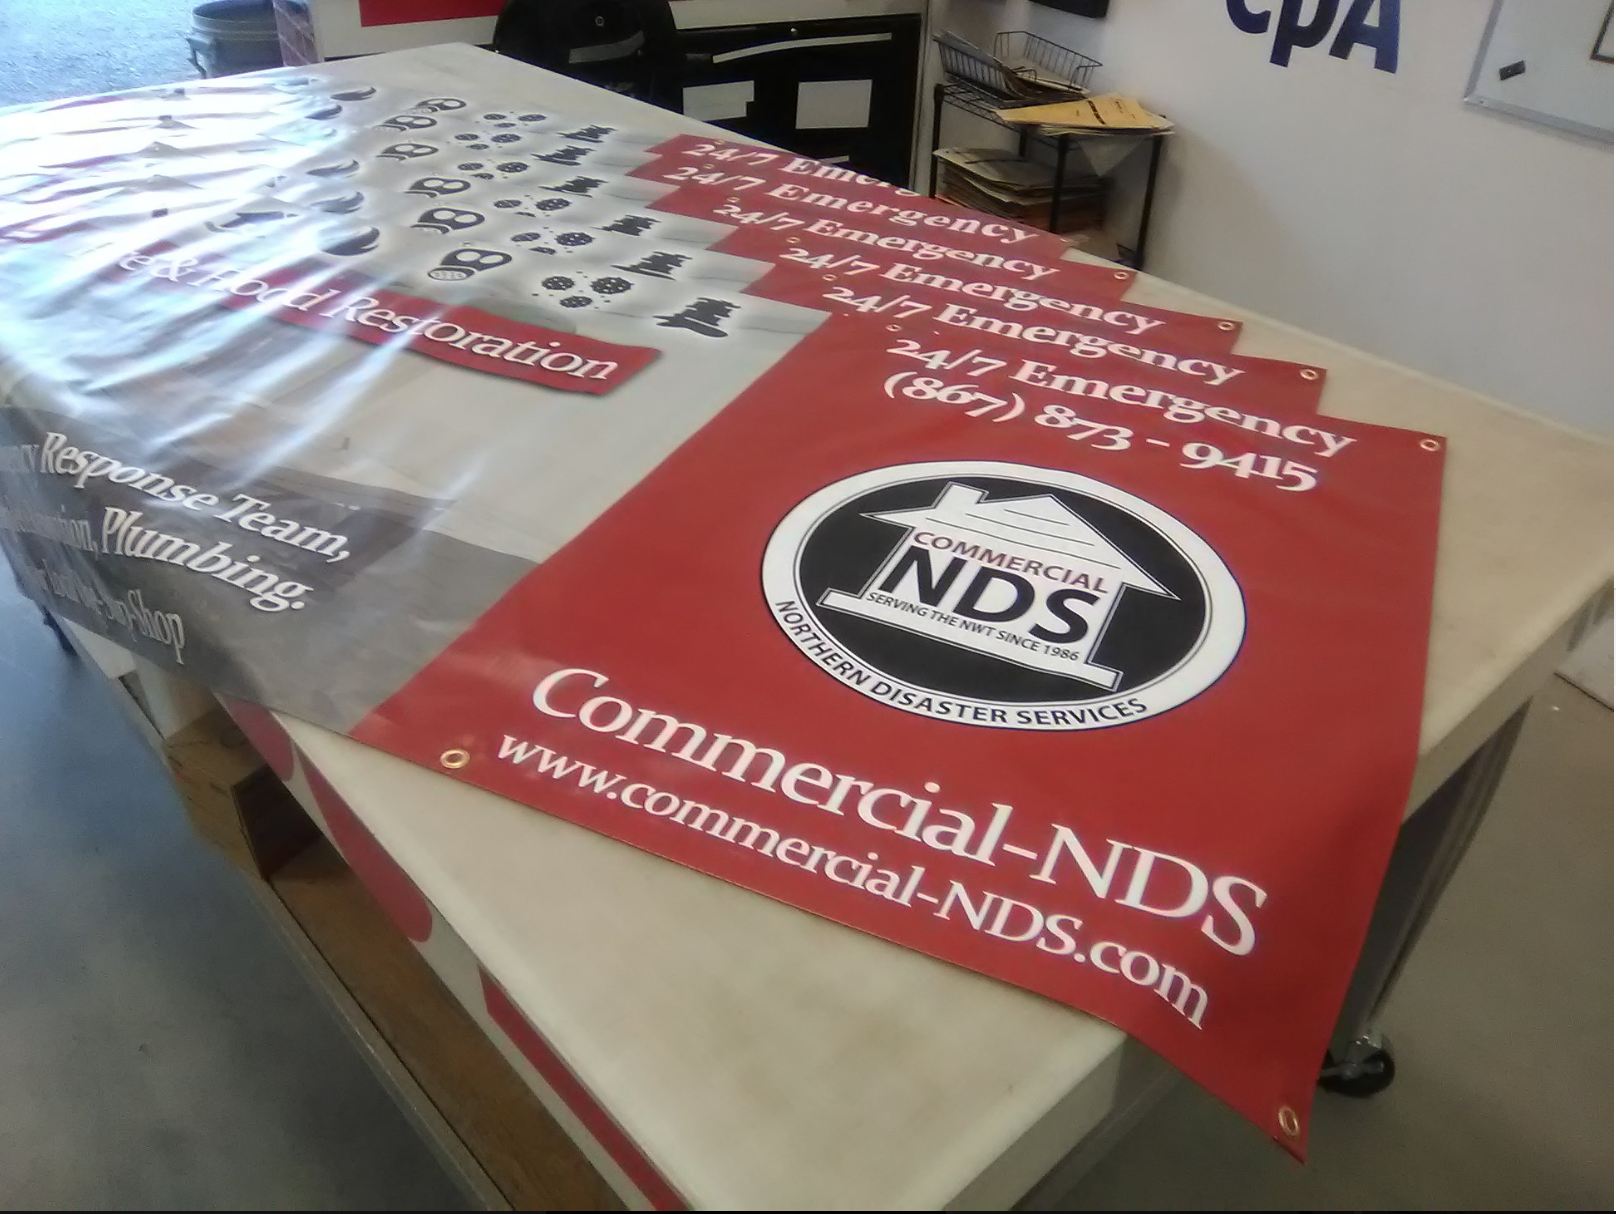 Northern Disaster Services